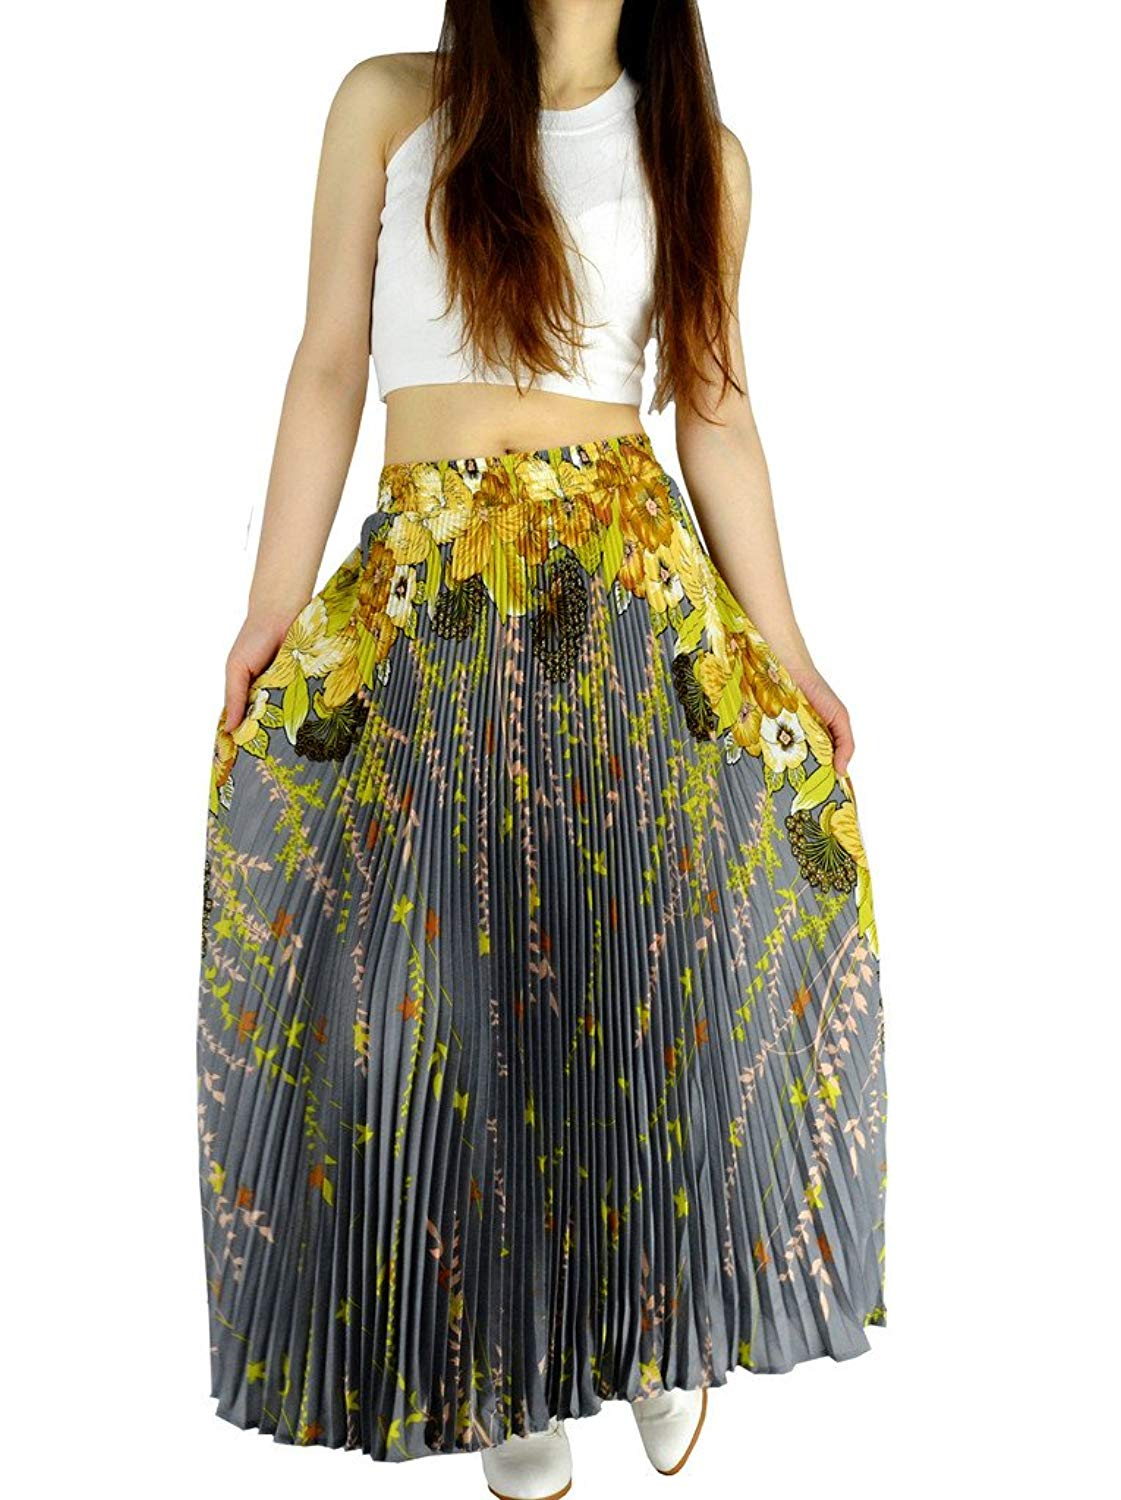 57c955aee97baf Get Quotations · YSJERA Womens Pleated Long Maxi Skirt - 35.4